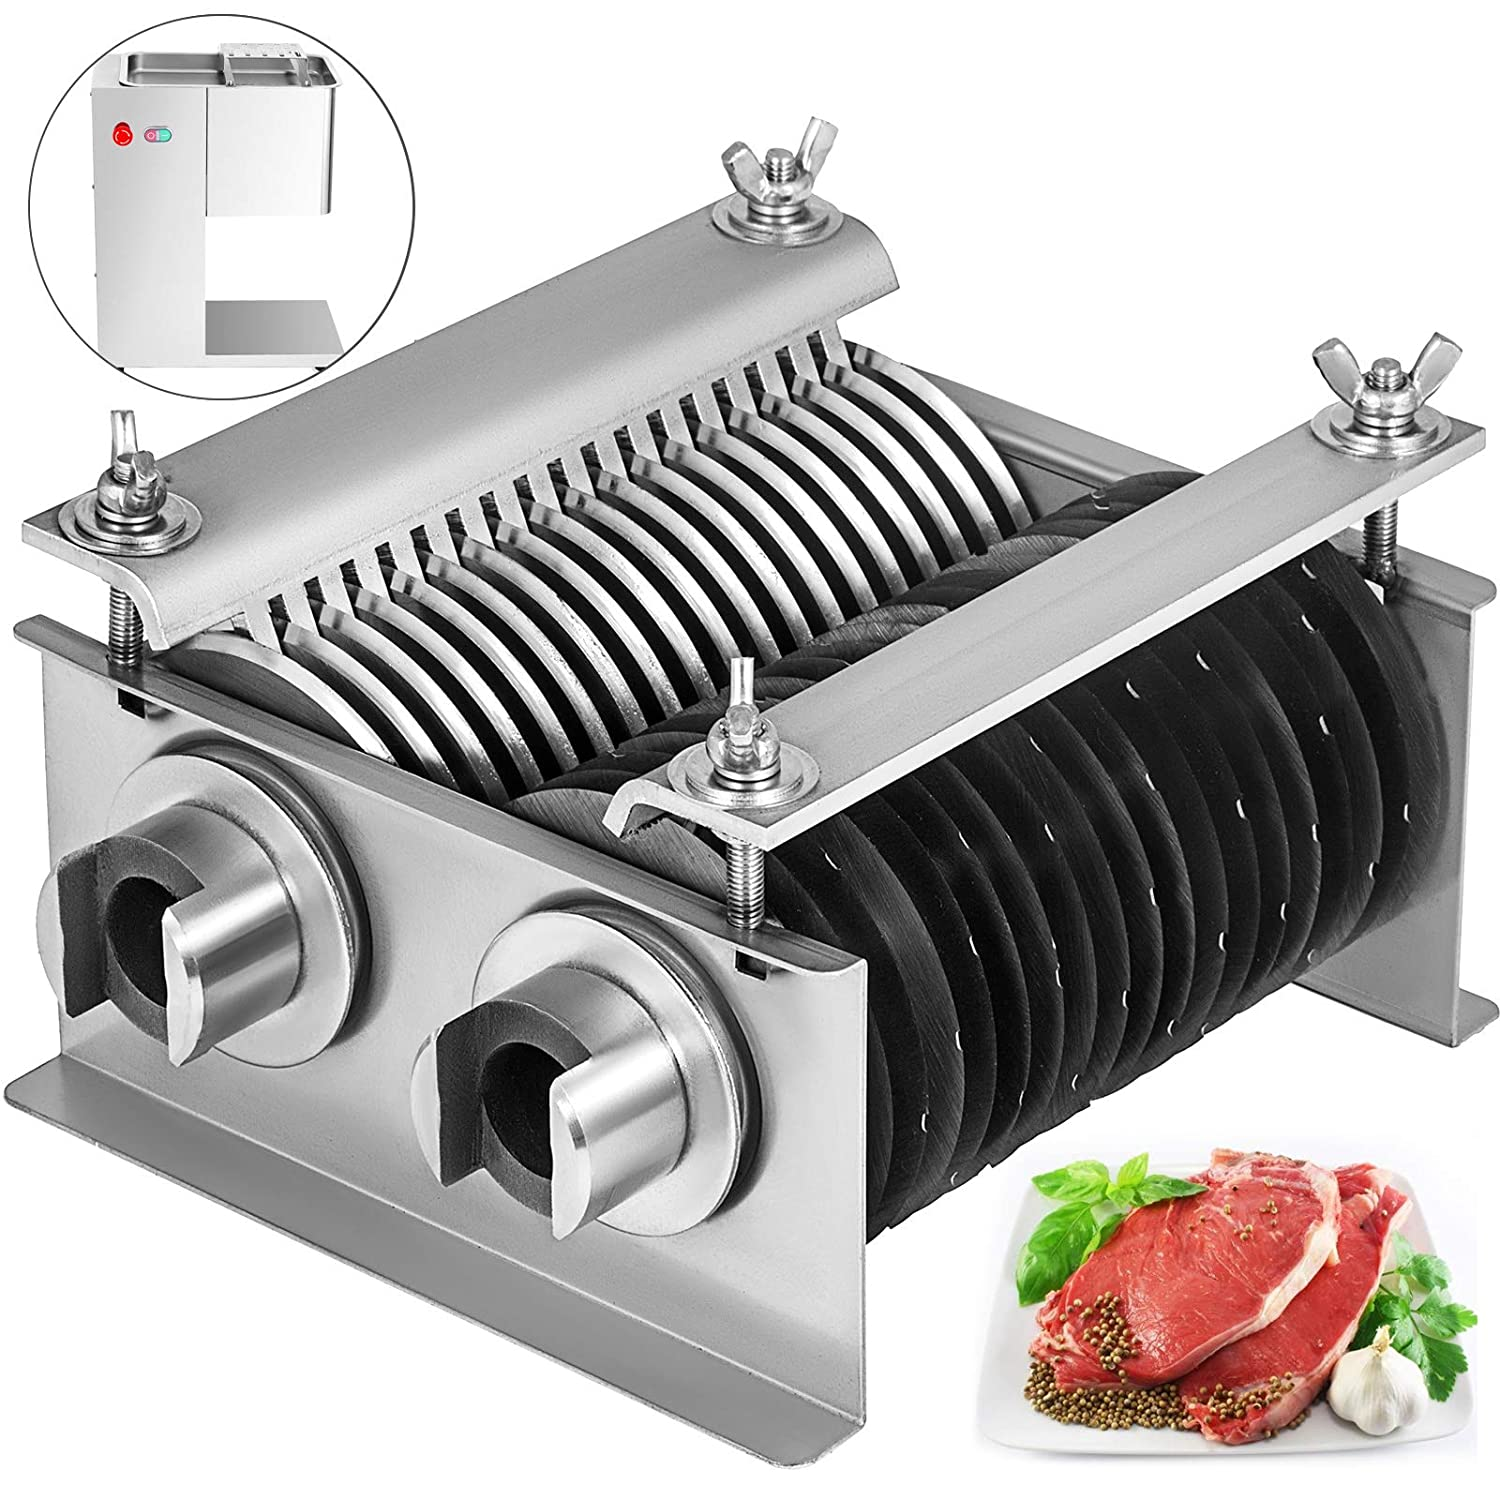 BestEquip One Set Blade 5mm for Vertical Meat Slicer 1100 LB H 550W Meat Cutting Machine 5mm Blade